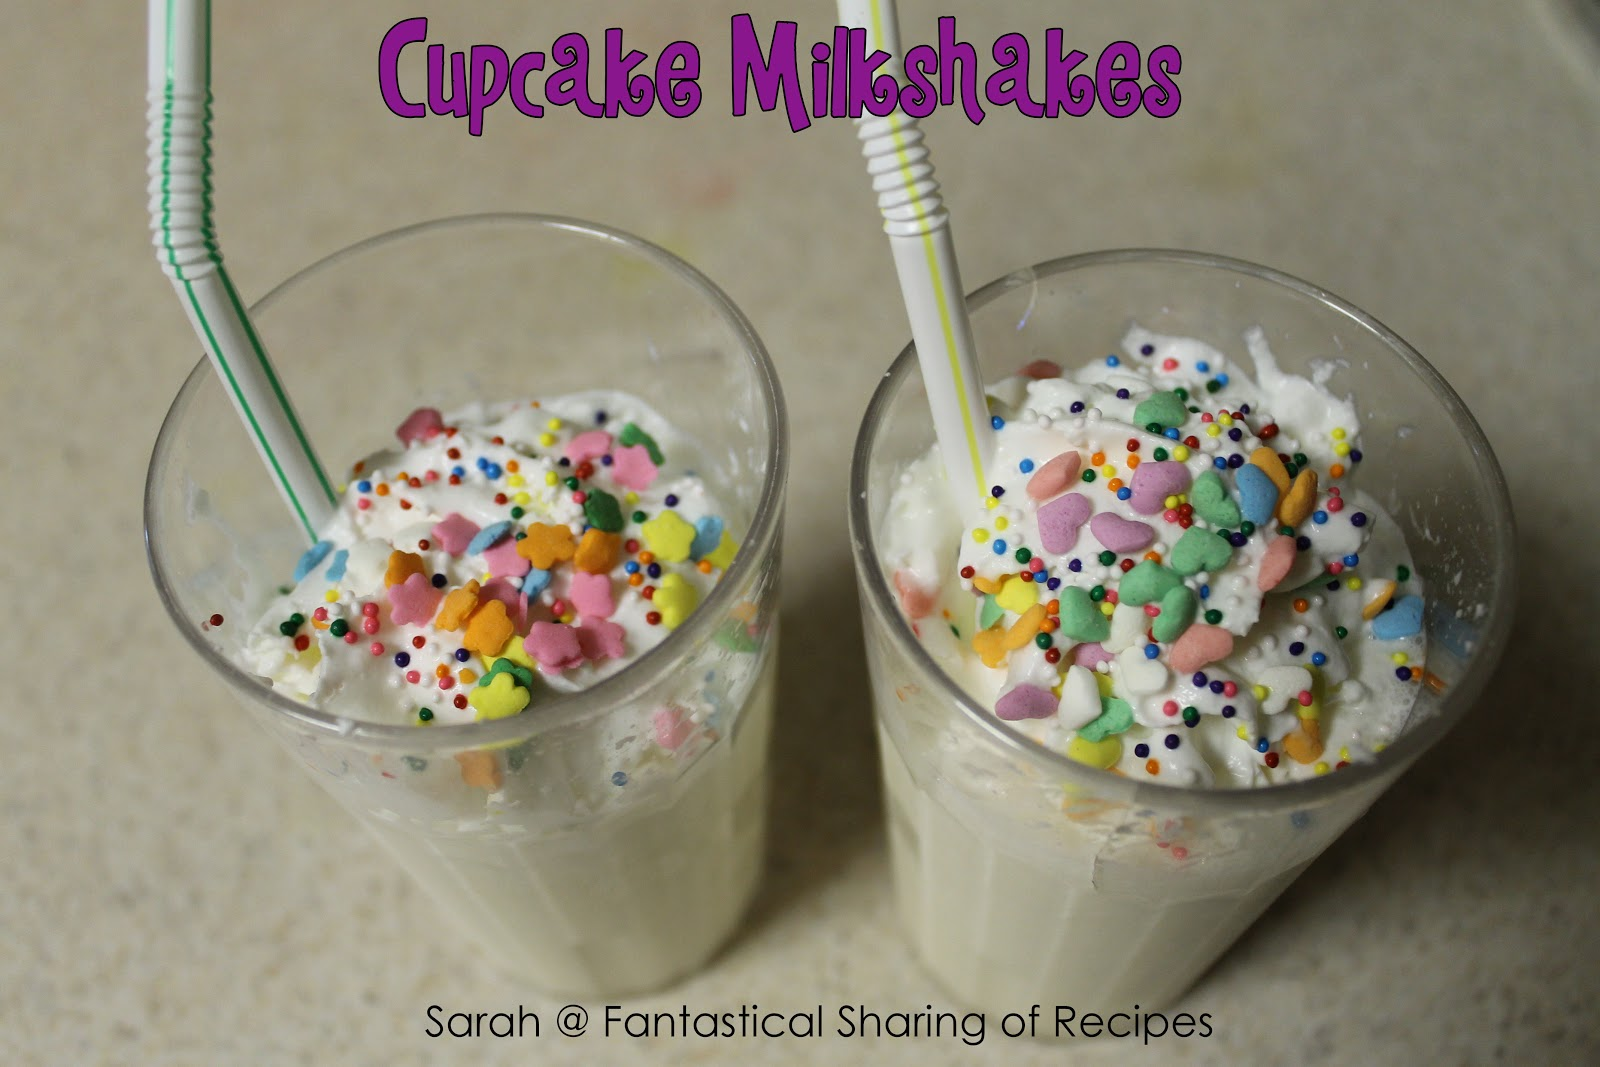 Fantastical Sharing of Recipes: Cupcake Milkshakes ...